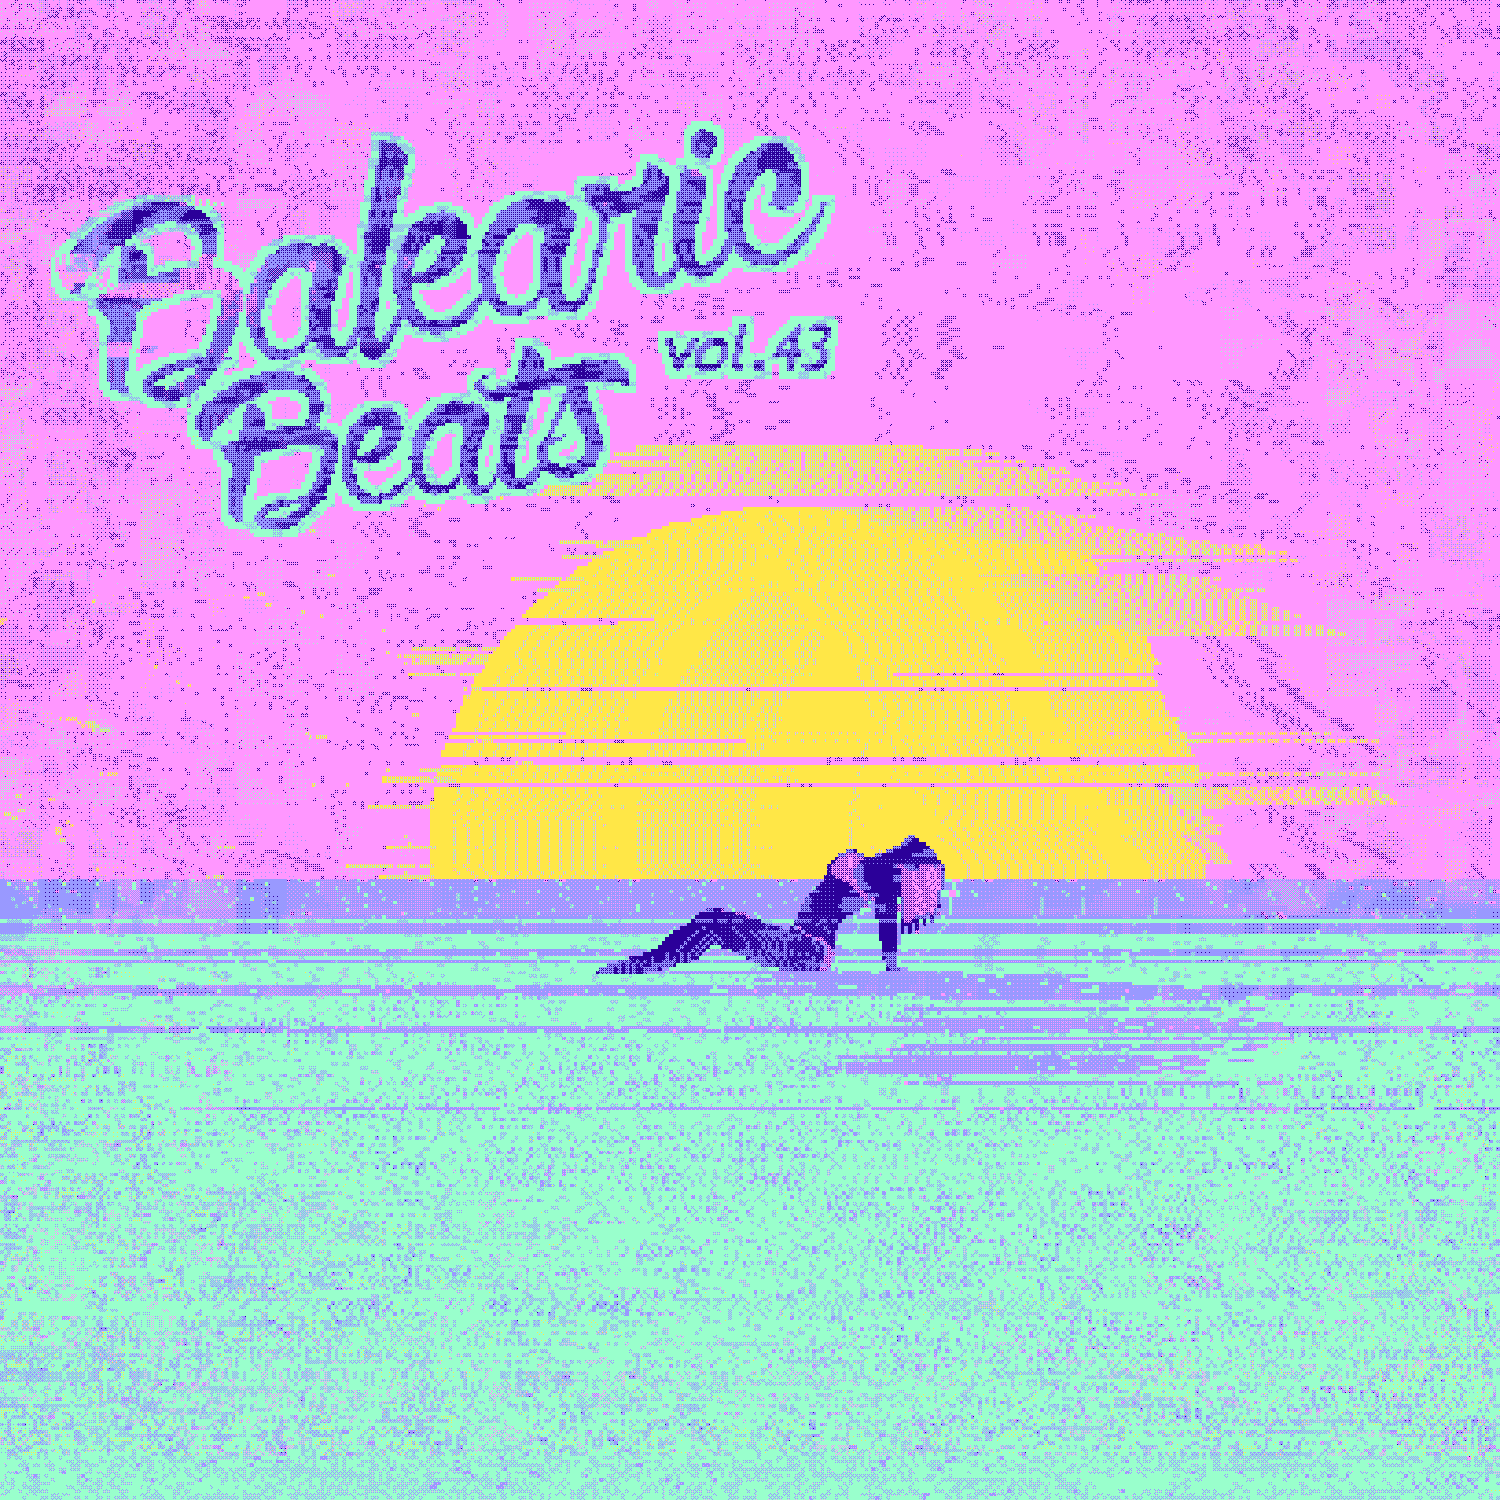 CP077] [KR075] Balearic Beats vol 43 - Chipmusic sounds of